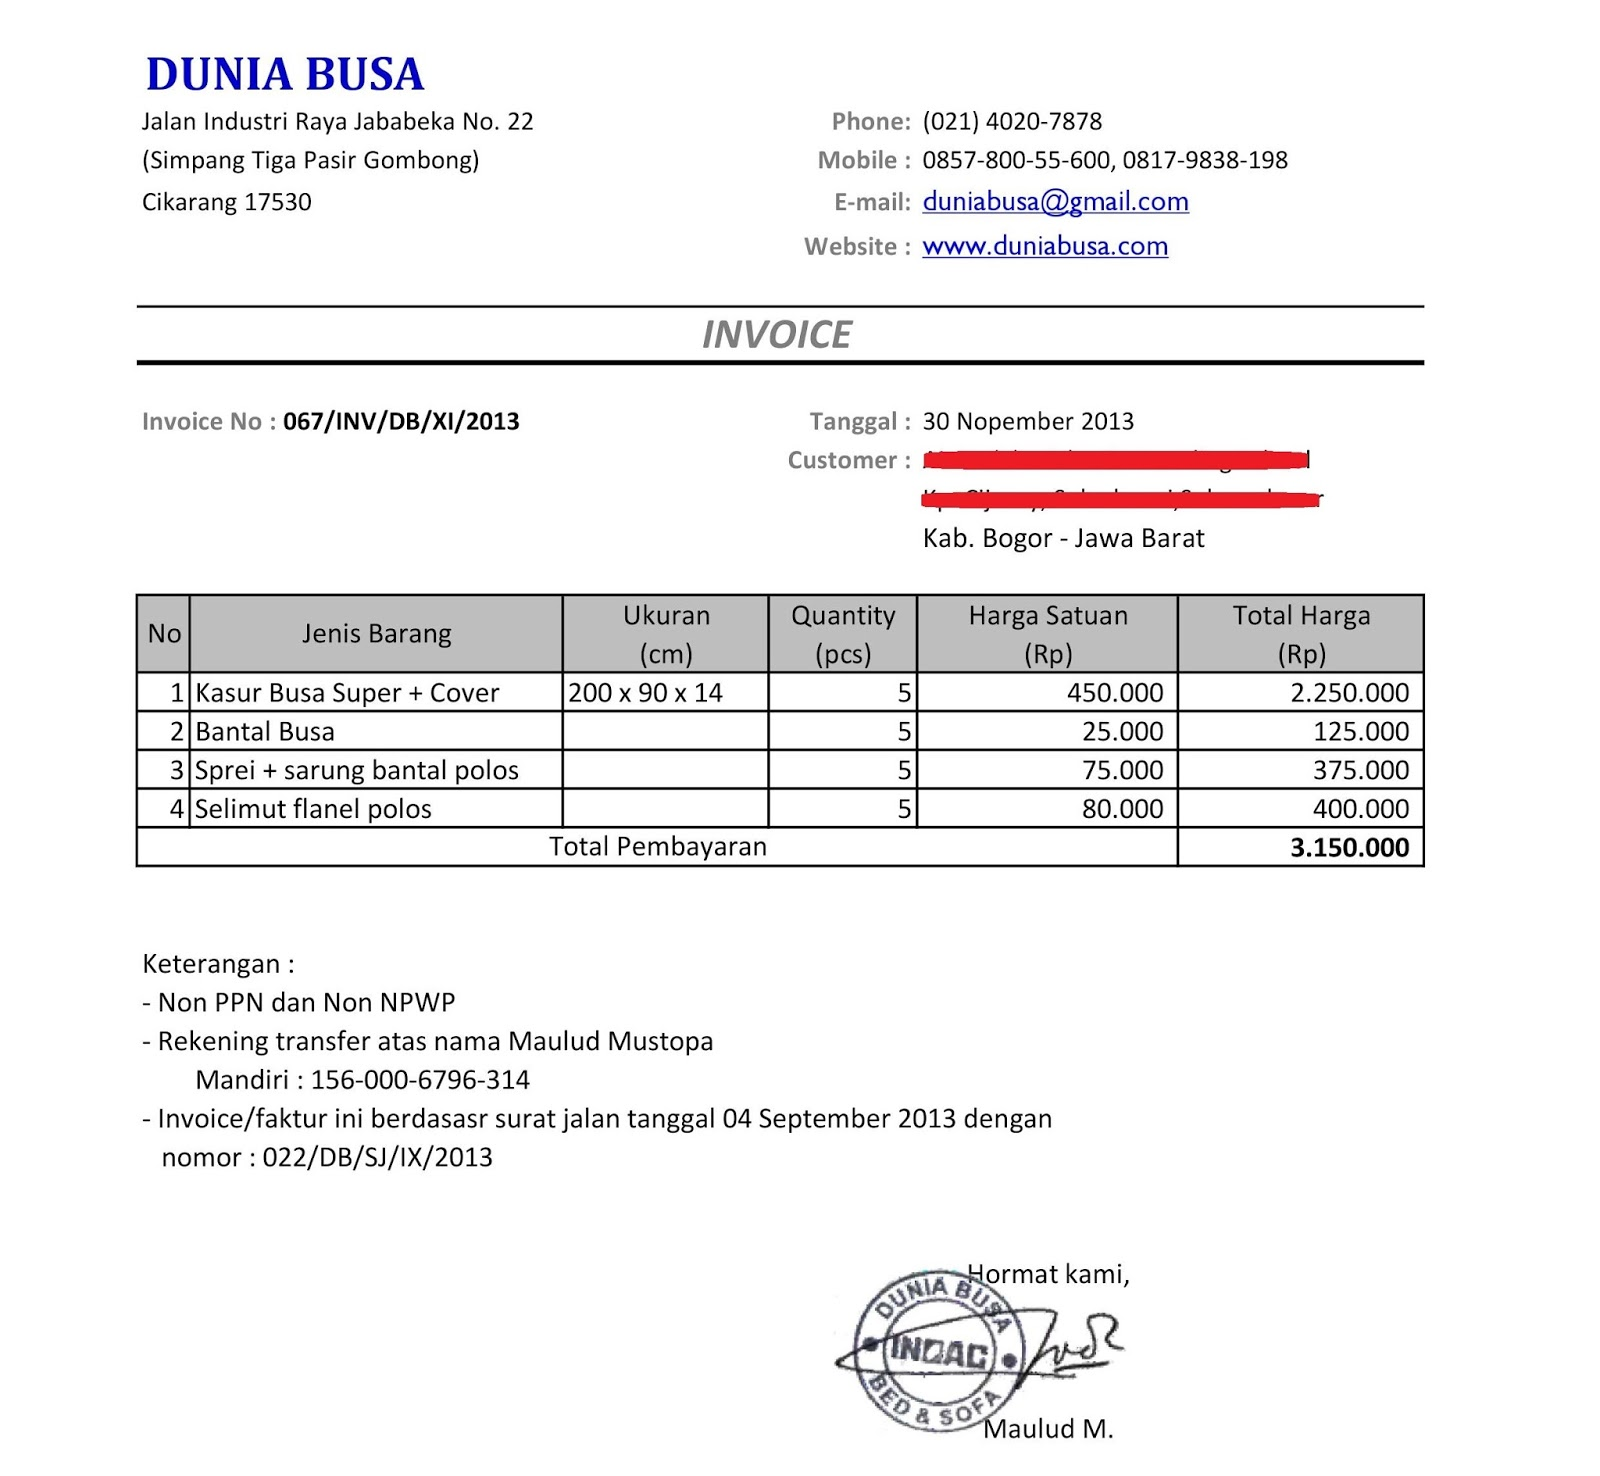 Usdgus  Winning Free Invoice Online  Create Invoice Online  Invoice Template  With Entrancing Contoh Format Invoice Atau Surat Tagihan  Brankas Arsip  Free Invoice Online With Appealing Close Invoice Finance Limited Also How To Right An Invoice In Addition Invoice Address Amazon And  Ford Escape Invoice Price As Well As Retail Invoice Sample Additionally Joomla Invoice From Sklepco With Usdgus  Entrancing Free Invoice Online  Create Invoice Online  Invoice Template  With Appealing Contoh Format Invoice Atau Surat Tagihan  Brankas Arsip  Free Invoice Online And Winning Close Invoice Finance Limited Also How To Right An Invoice In Addition Invoice Address Amazon From Sklepco